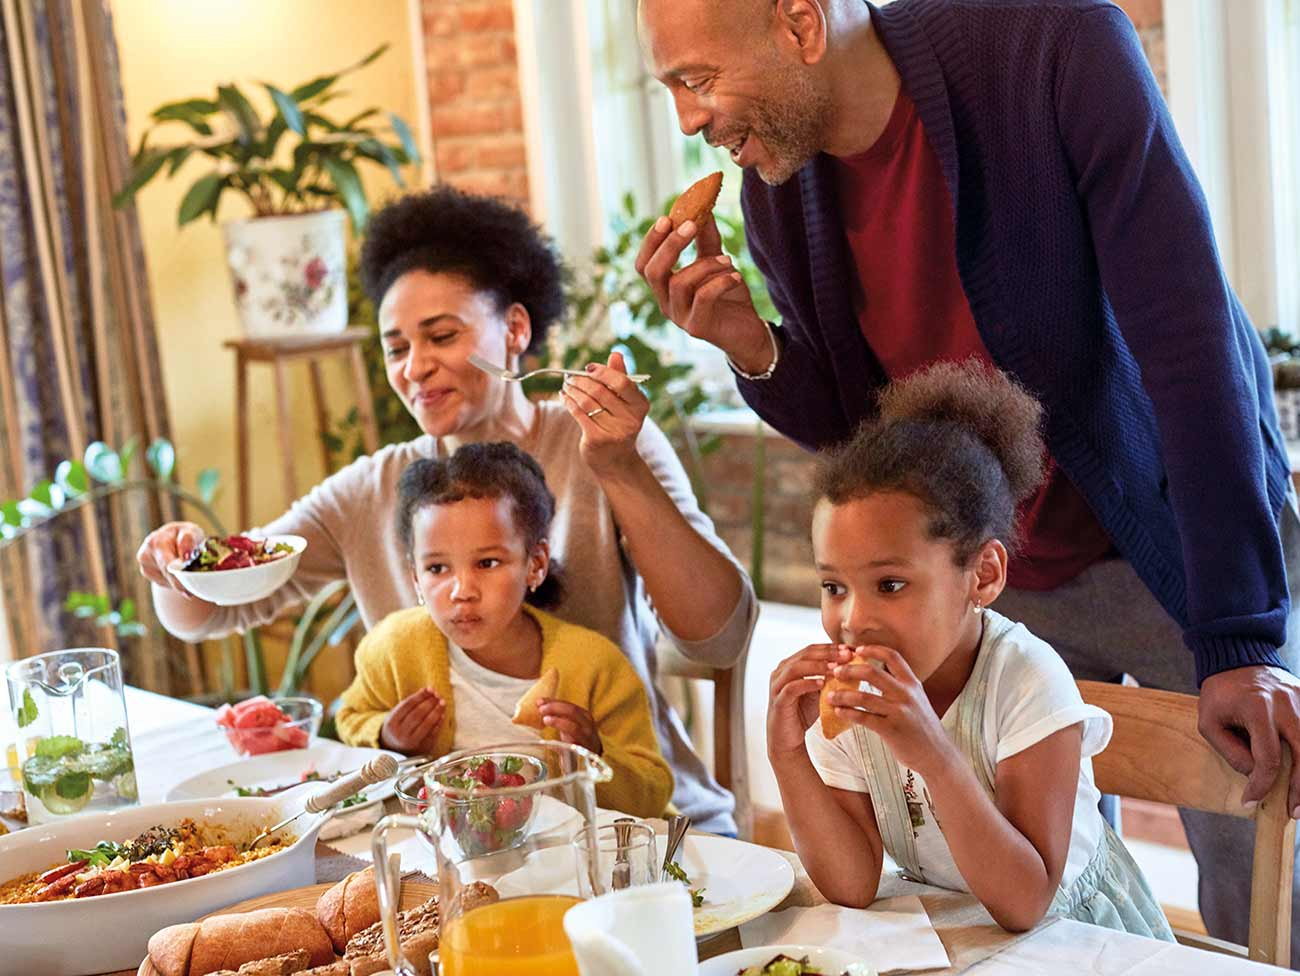 A happy family seated at a table filled with a holiday feast.